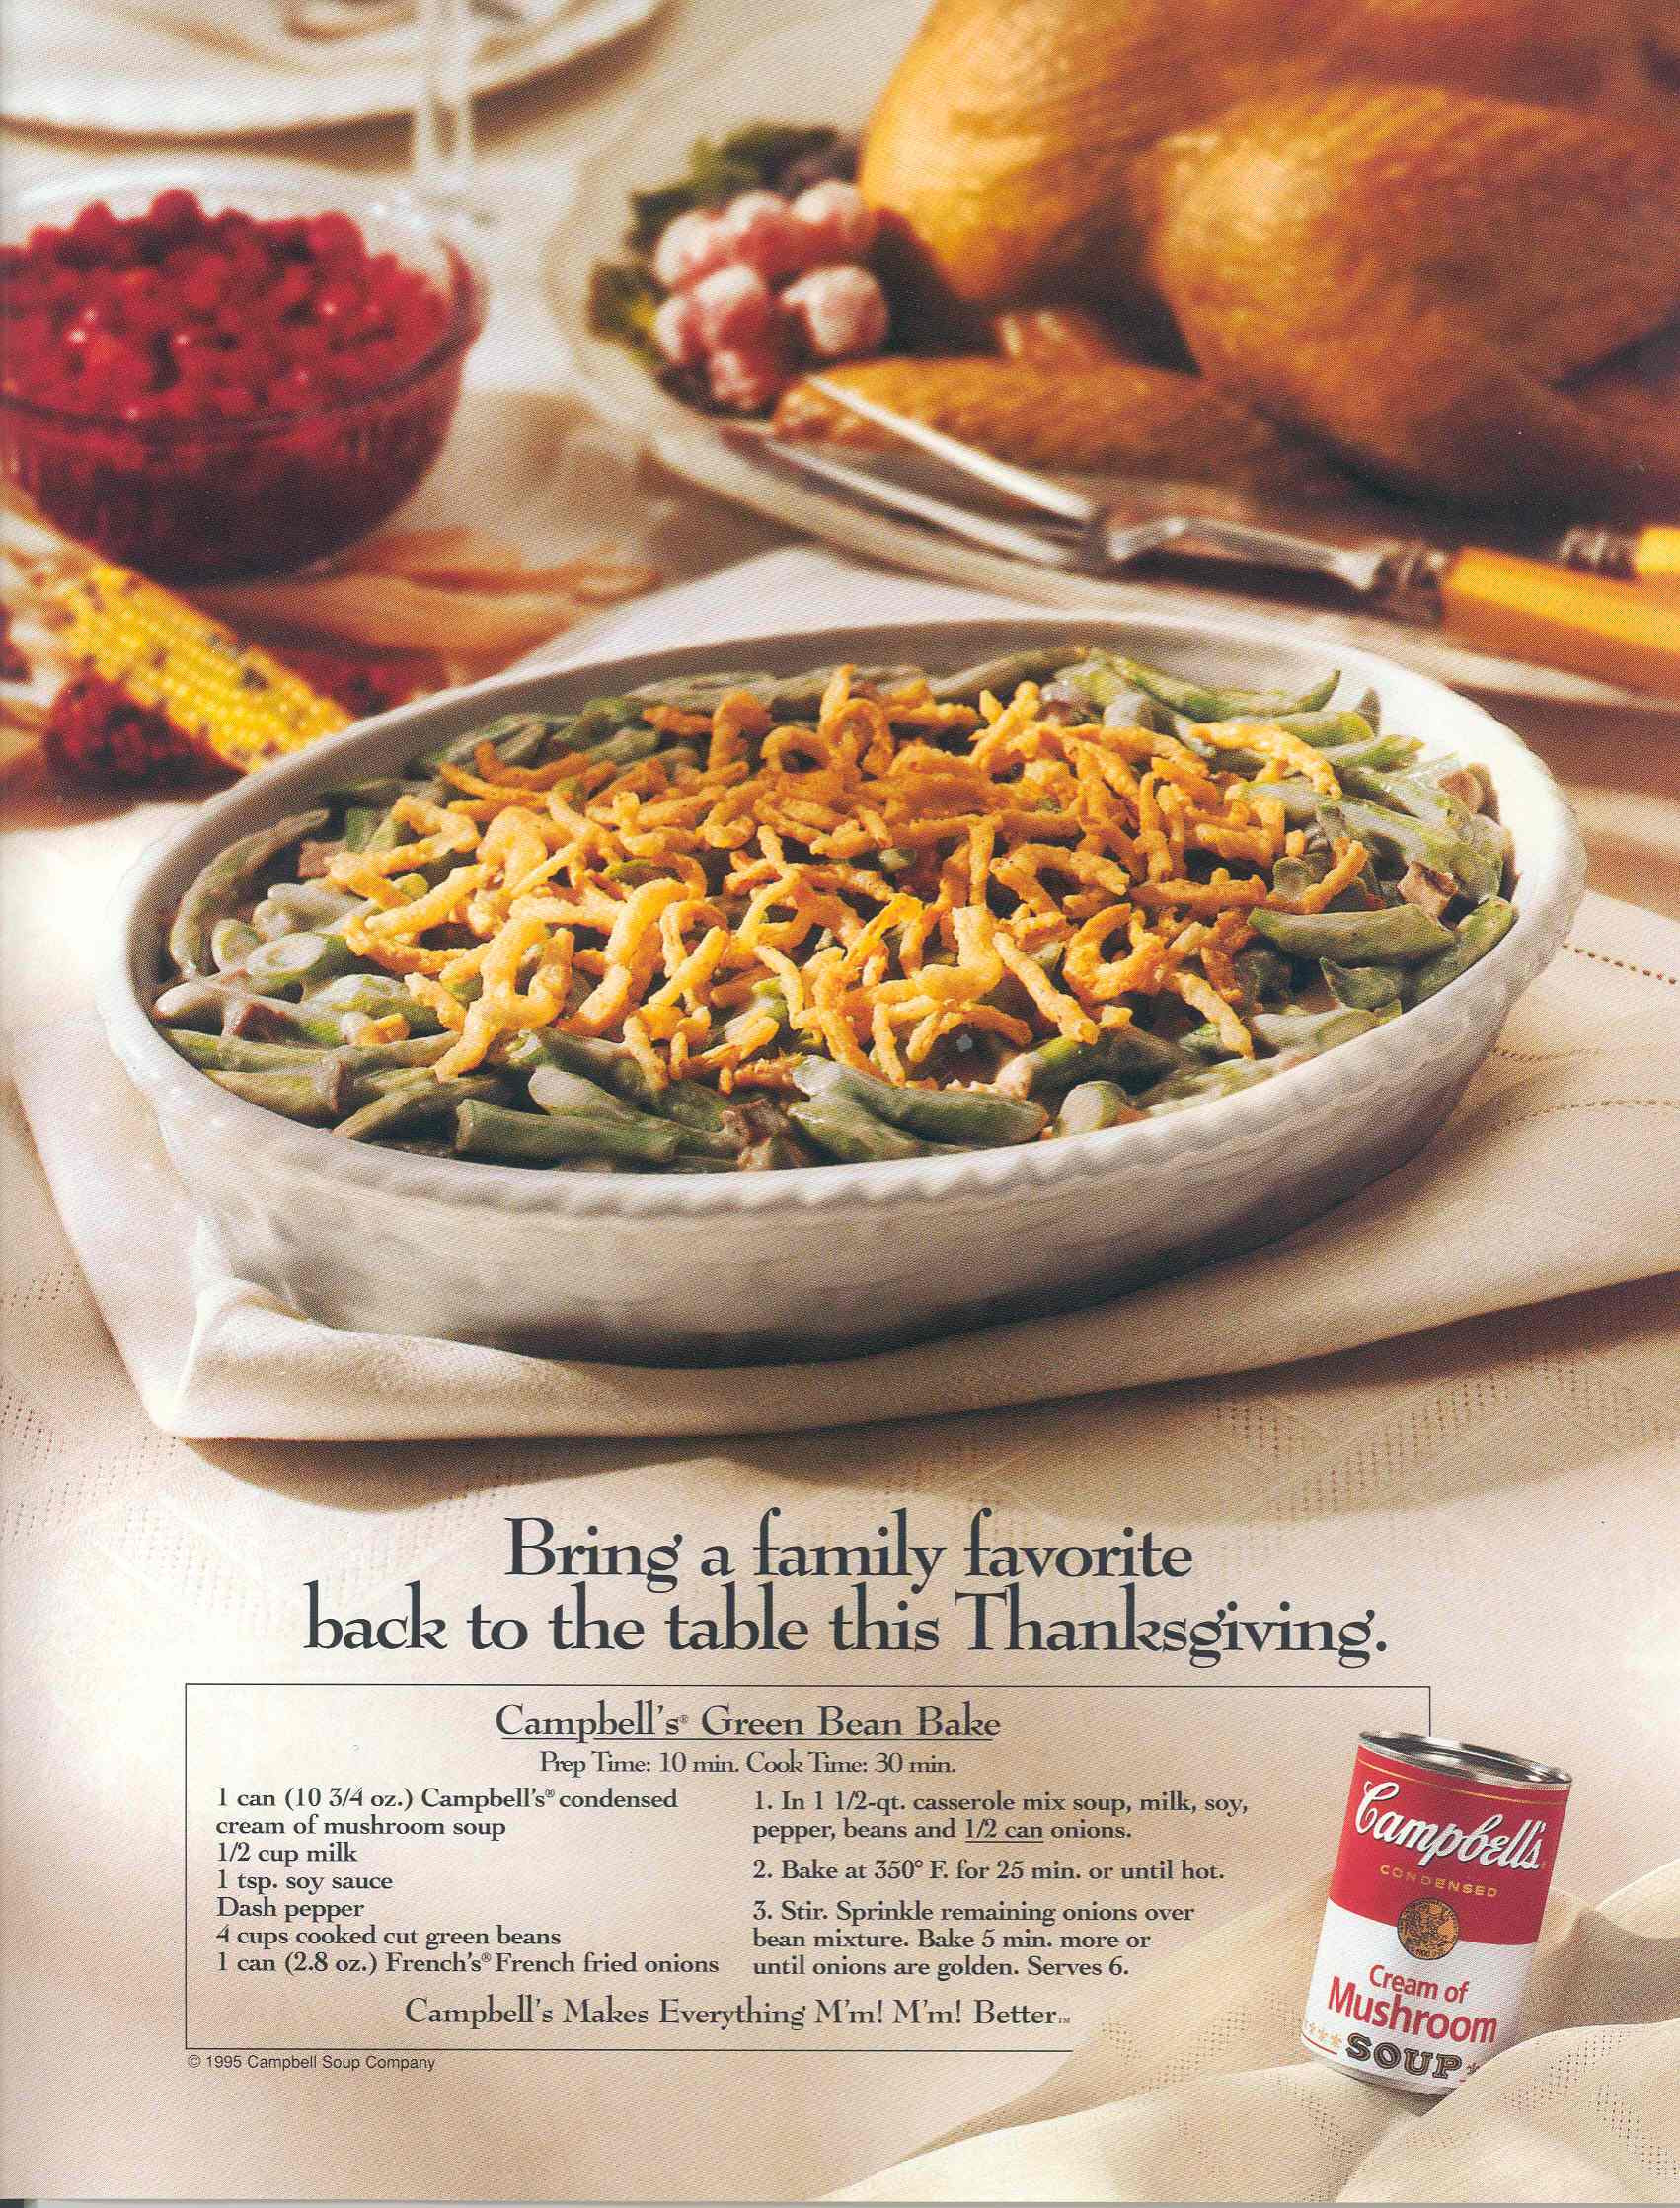 Best Turkey Brand For Thanksgiving  The History of America's Favorite Thanksgiving Brands